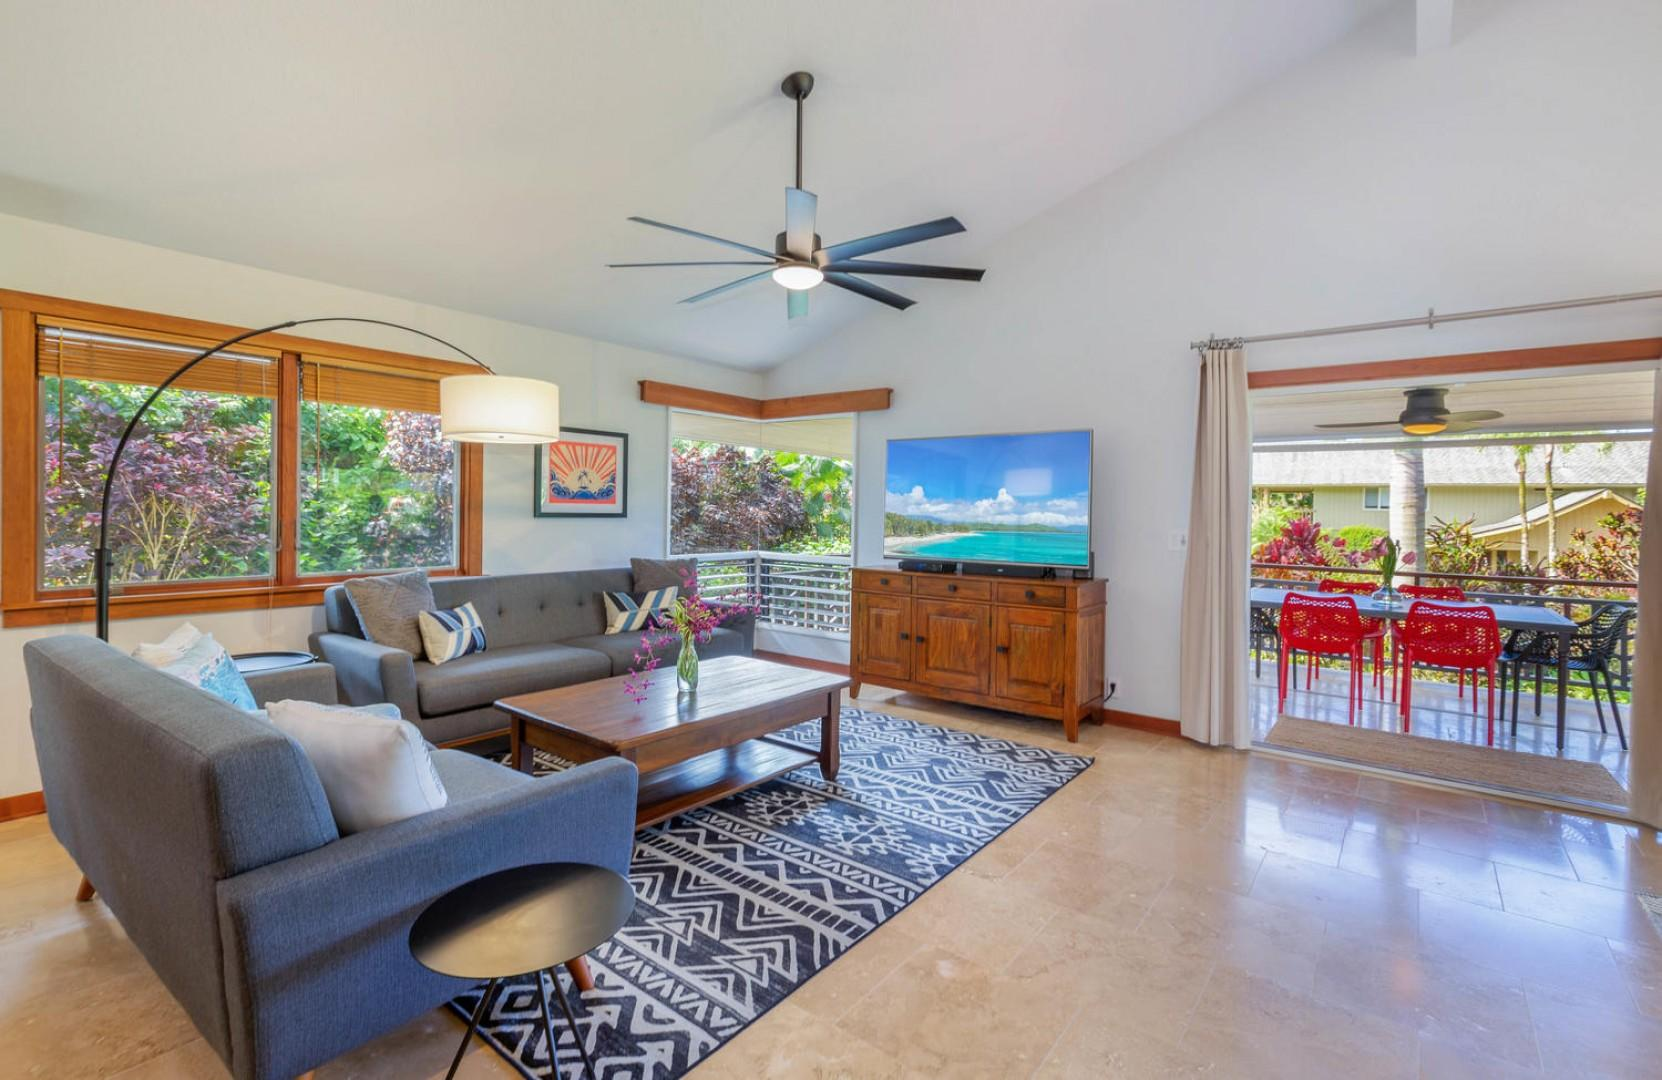 Living space with covered lanai beyond